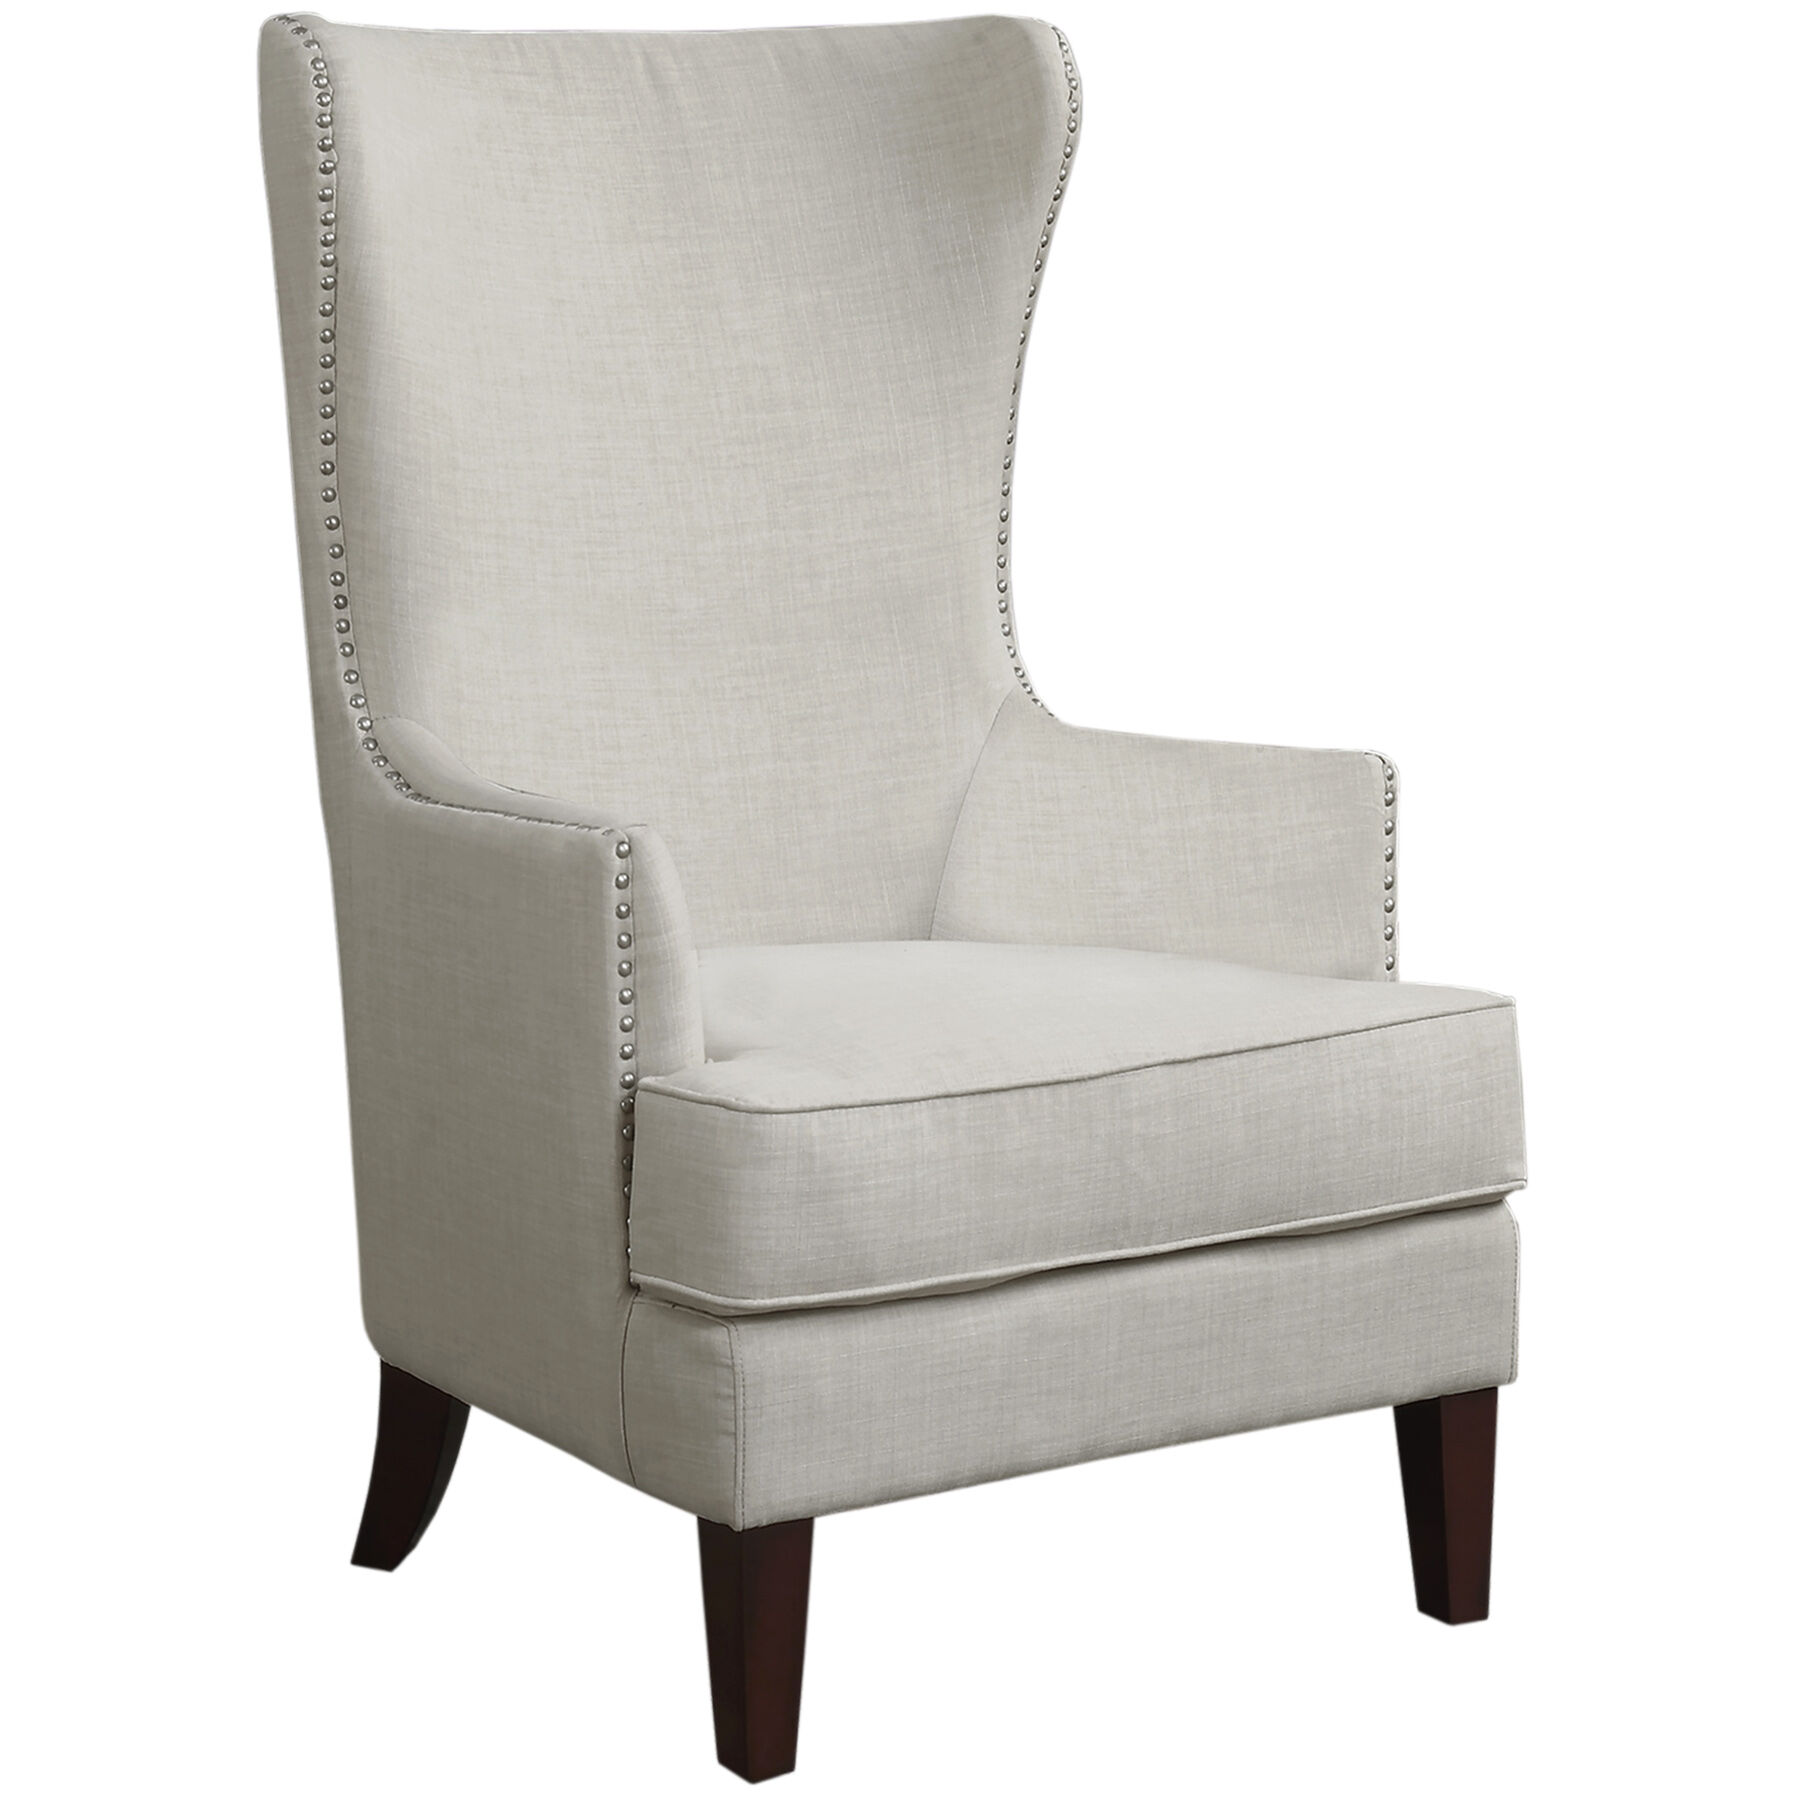 Kori Upholstered High Back Taupe Accent Chair At Home - Taupe High Back Sofa